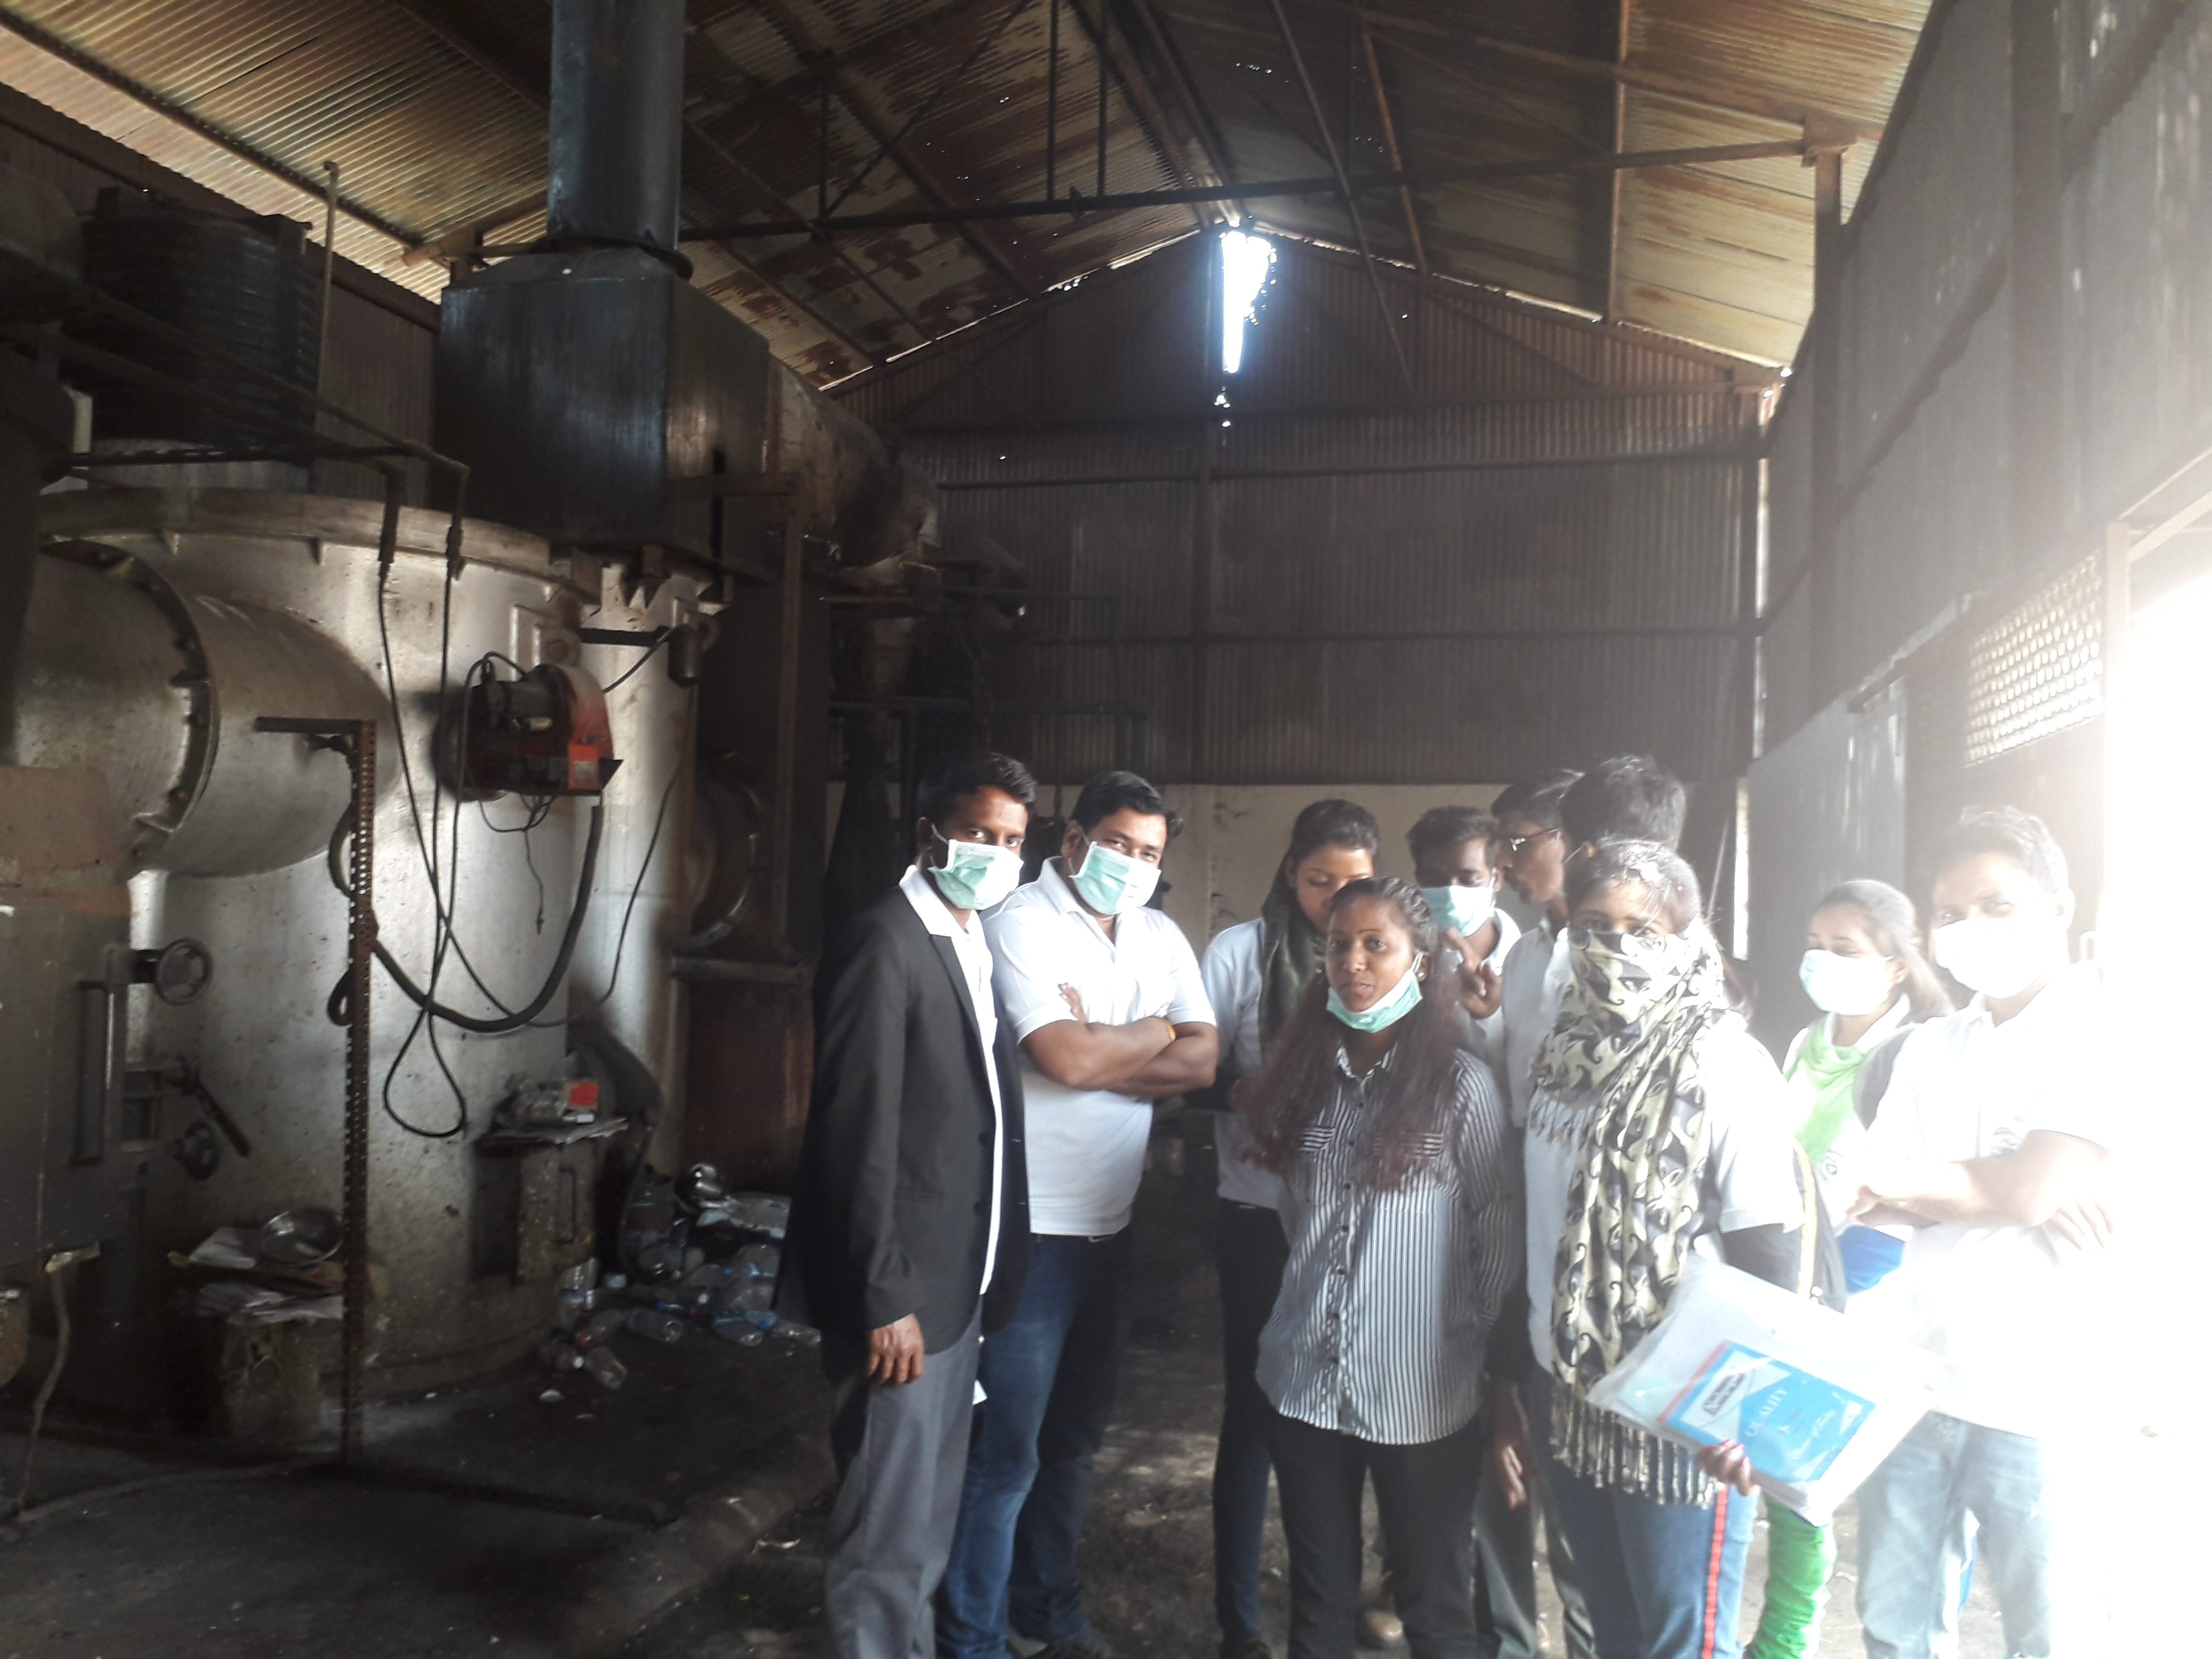 Tour & Exposer Visit on Waste Management